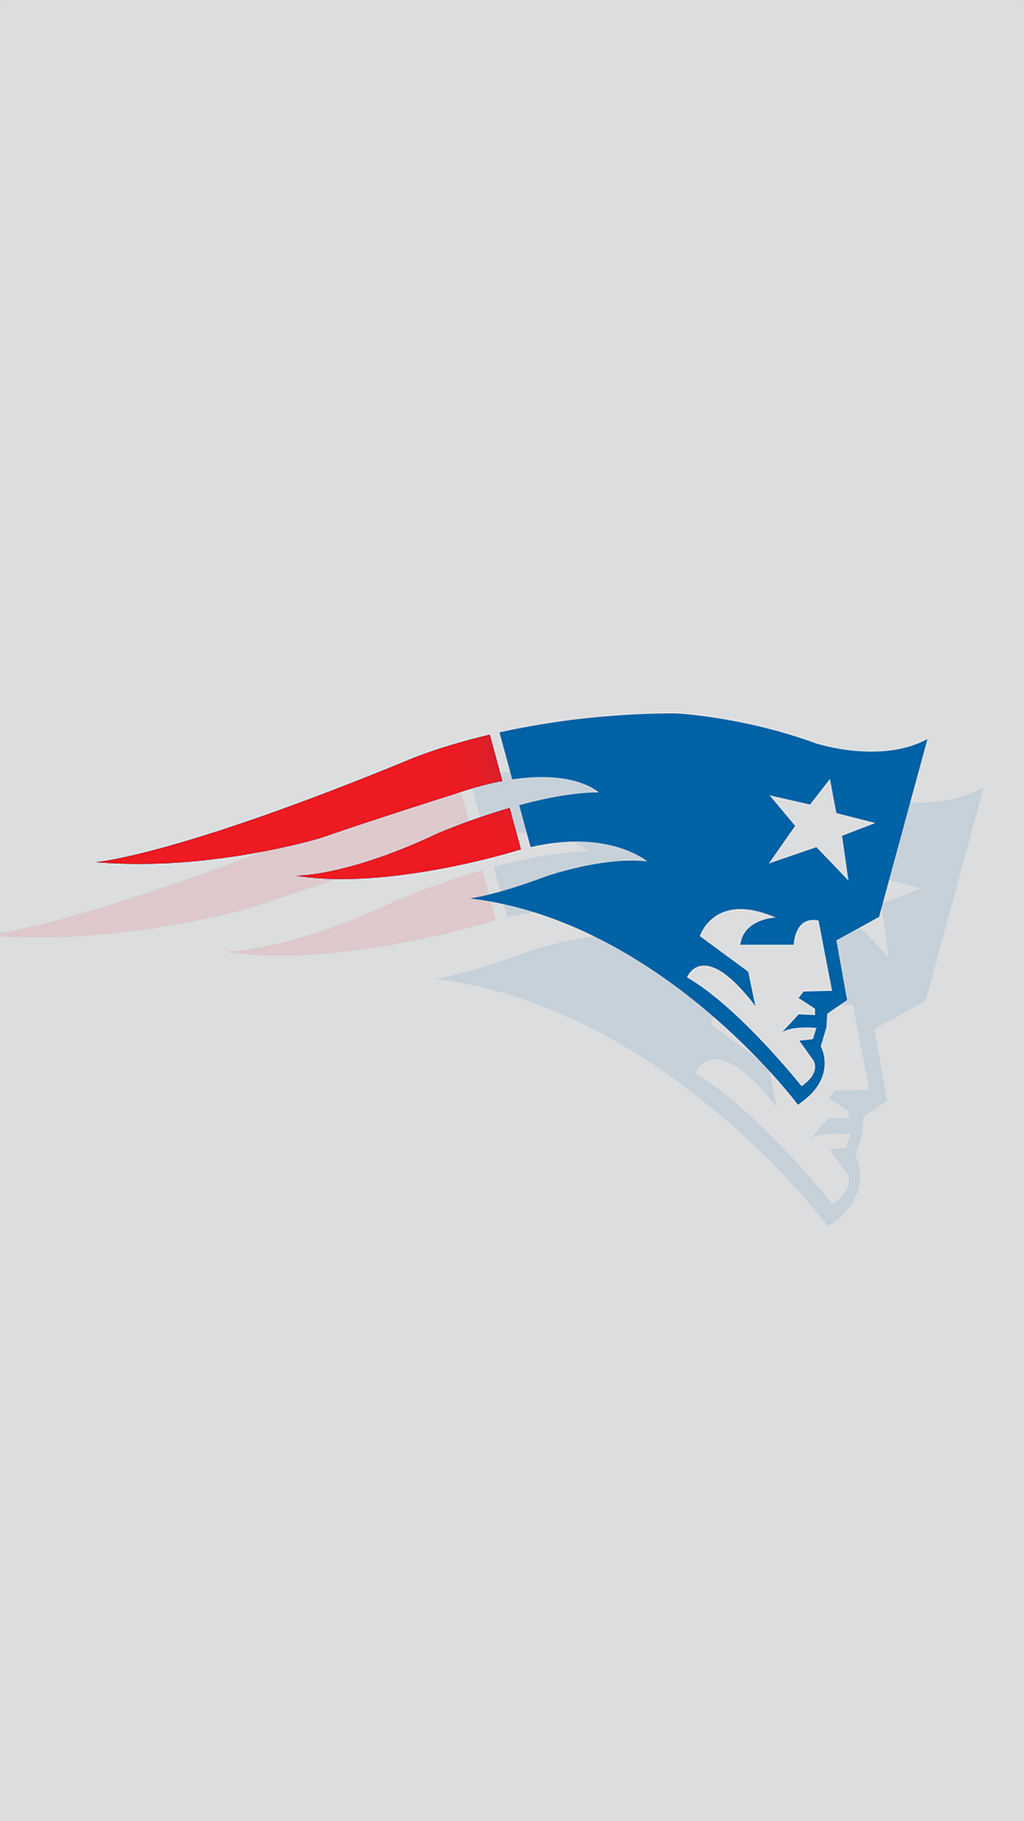 England Patriots Wallpaper Iphone 6s By Lirking20 On Deviantart